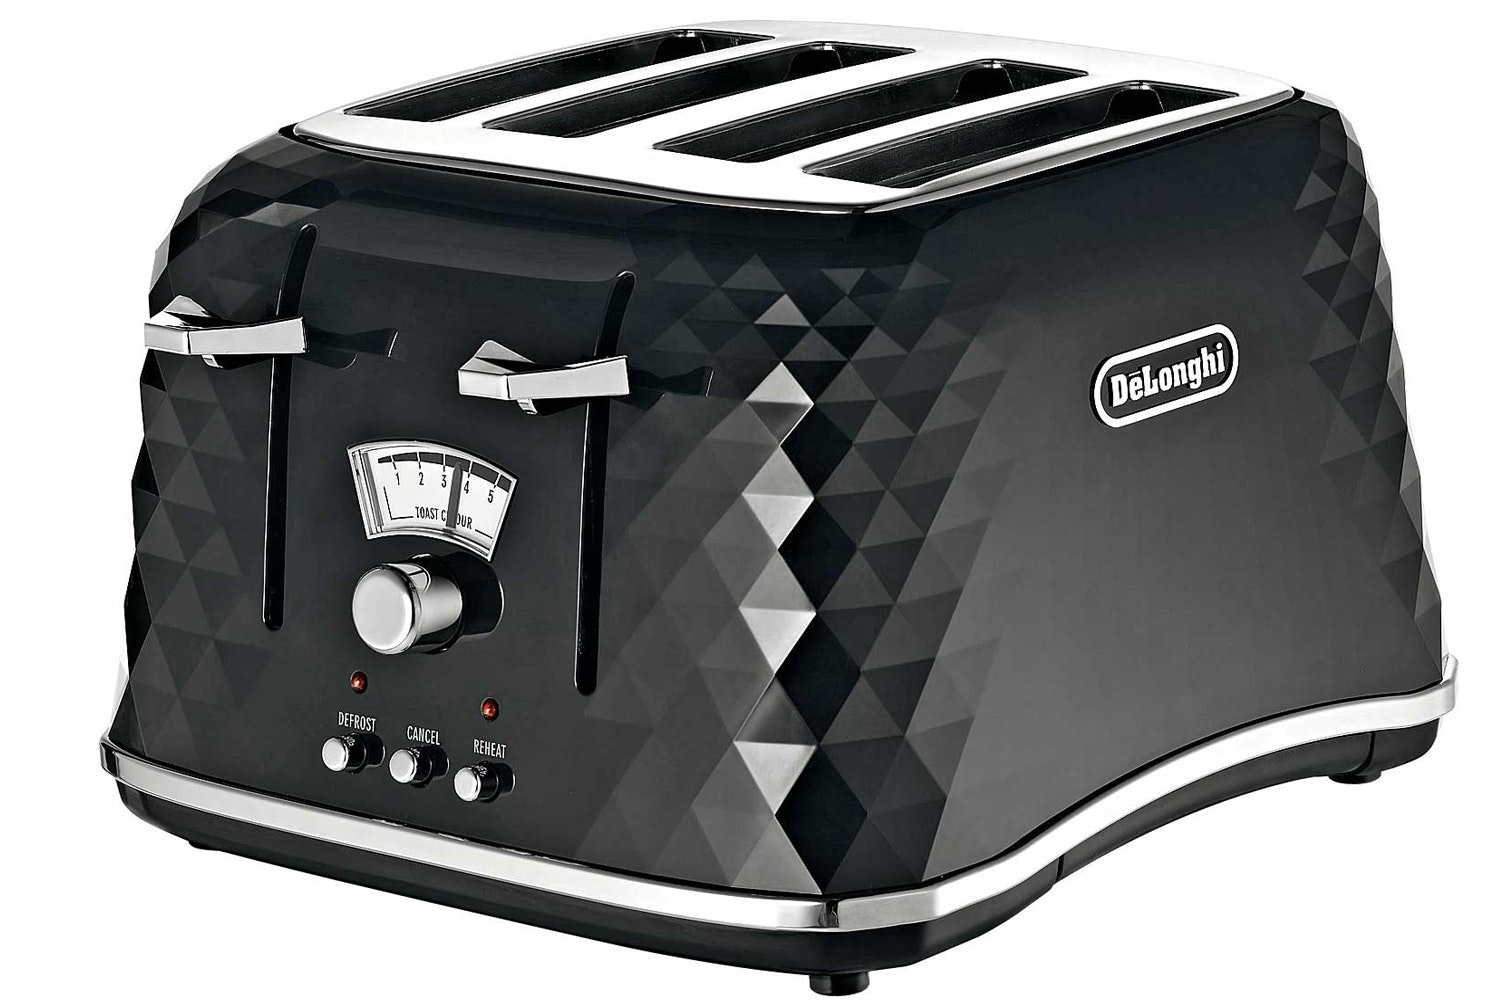 DeLonghi Brilliante 4 Slice Toaster | CTJ4003BK | Black